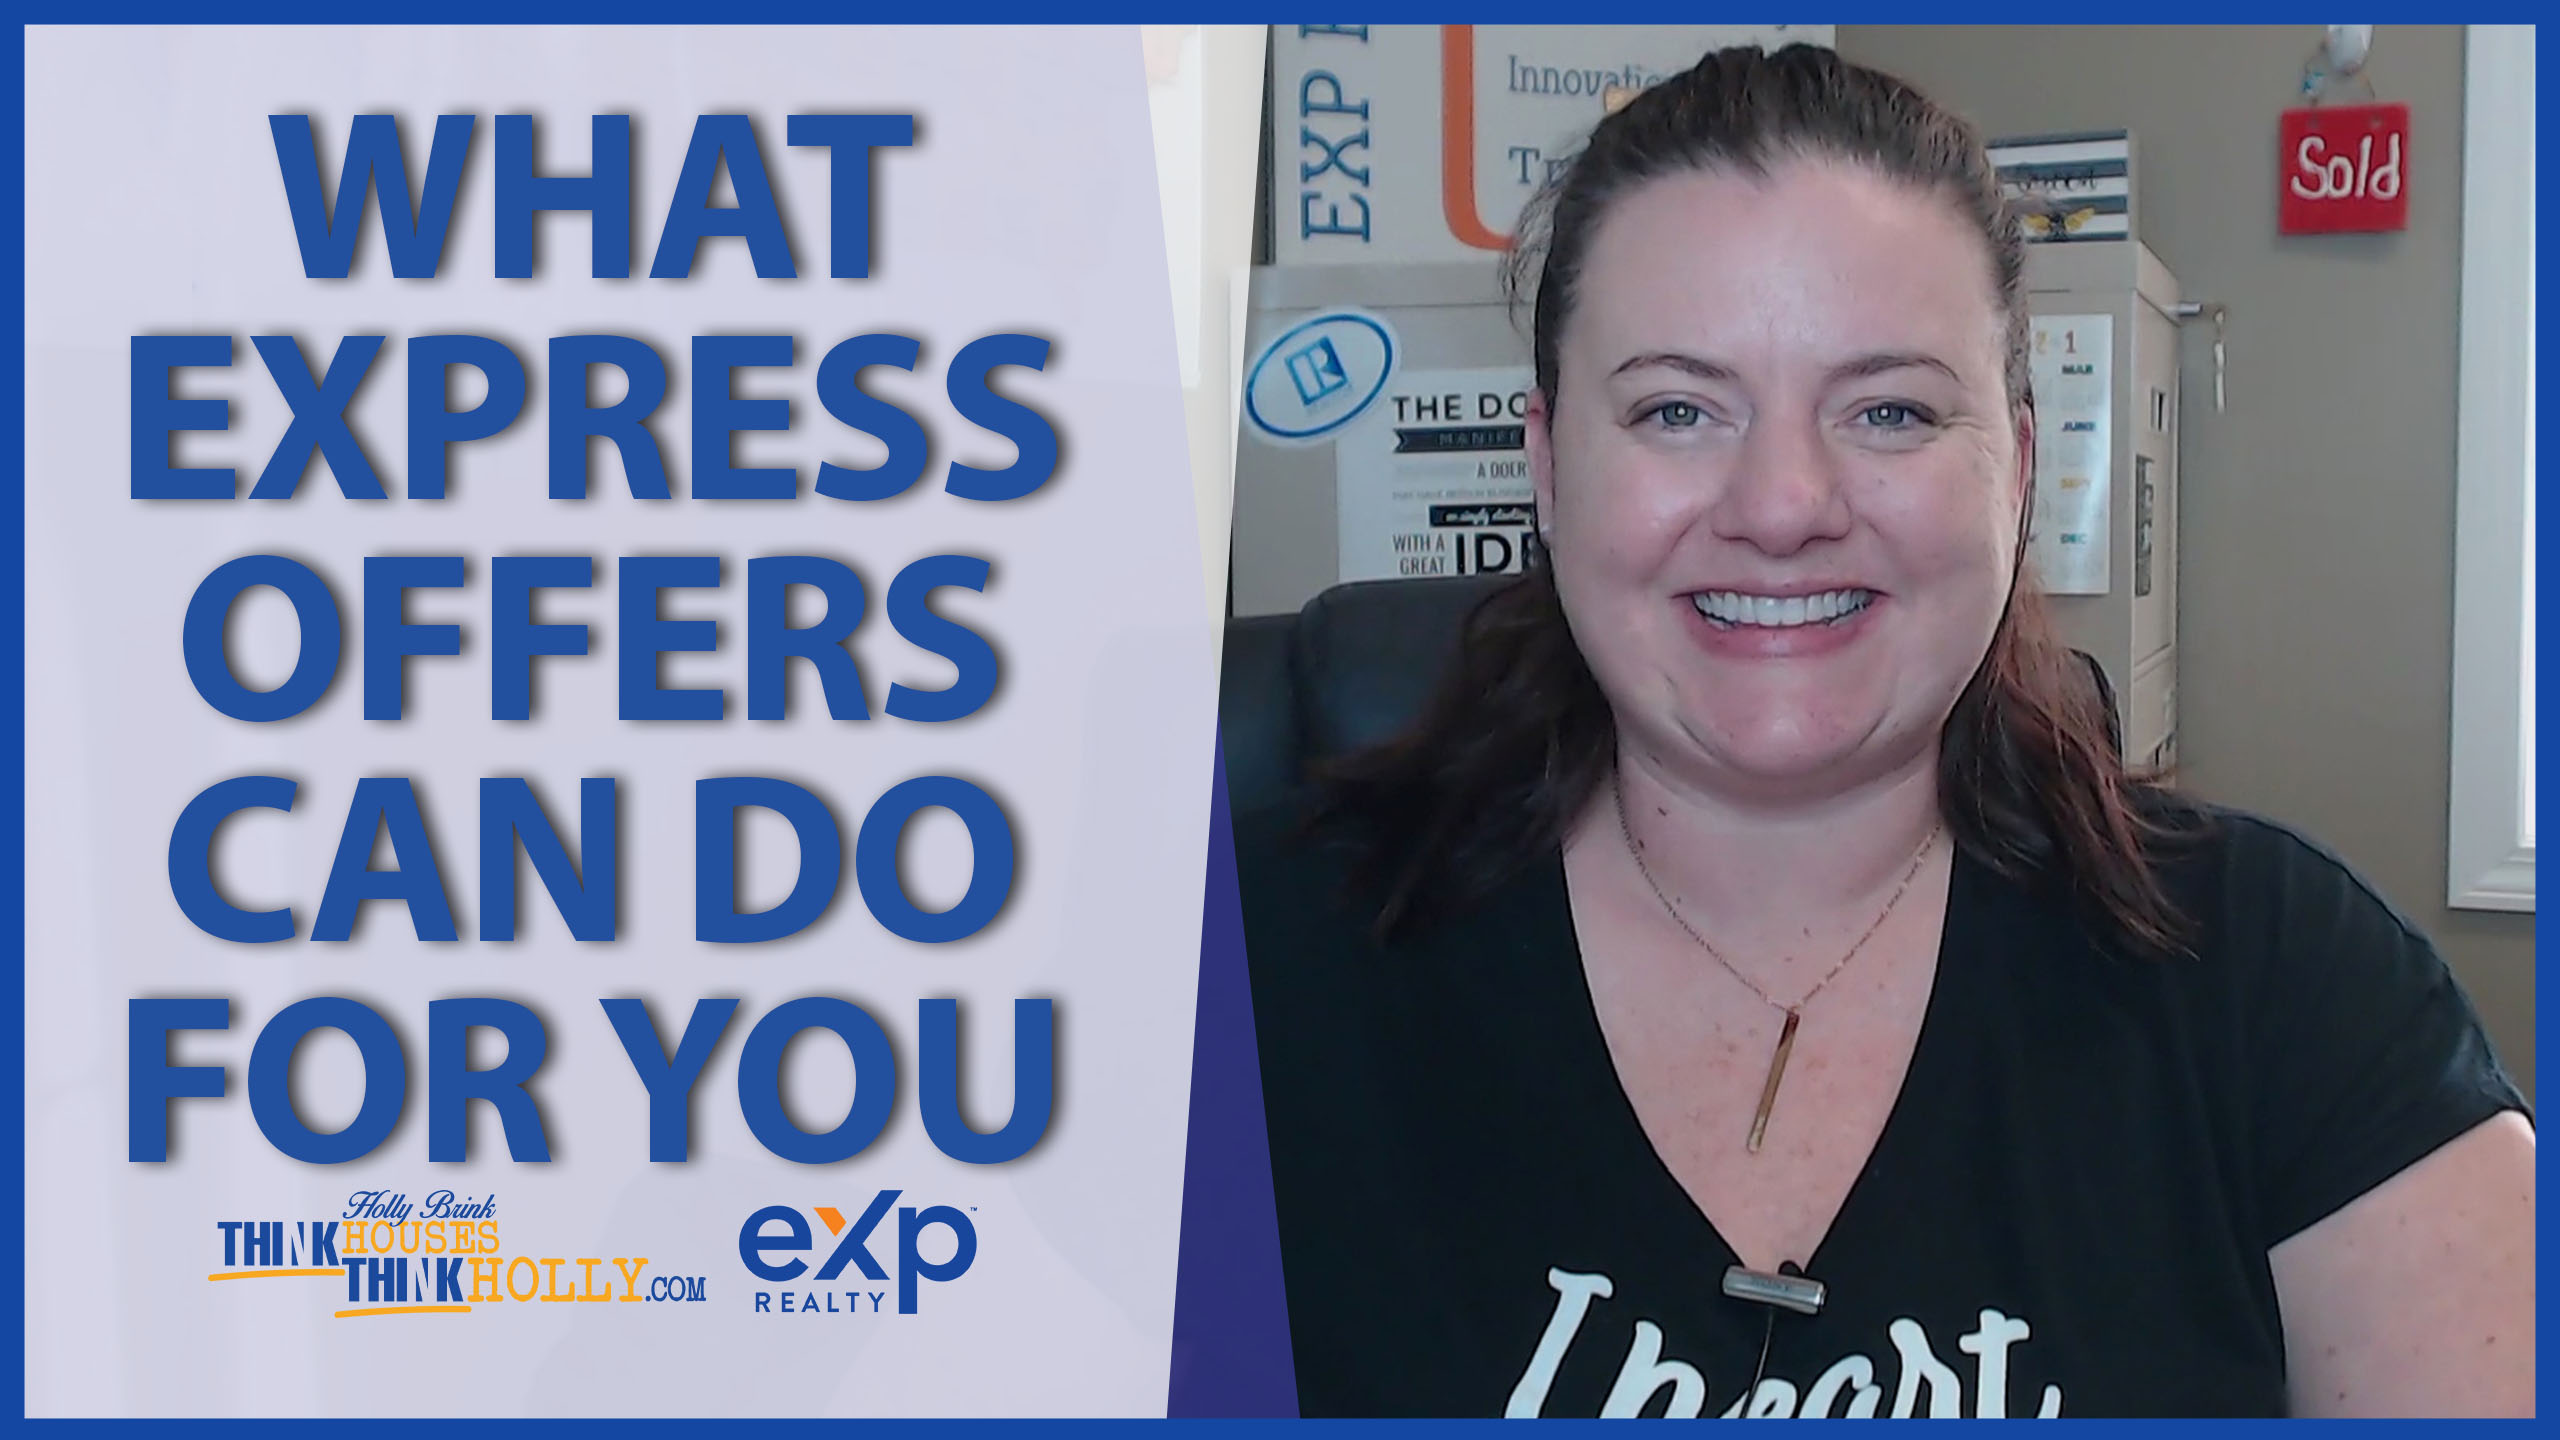 What Express Offers Can Do For You